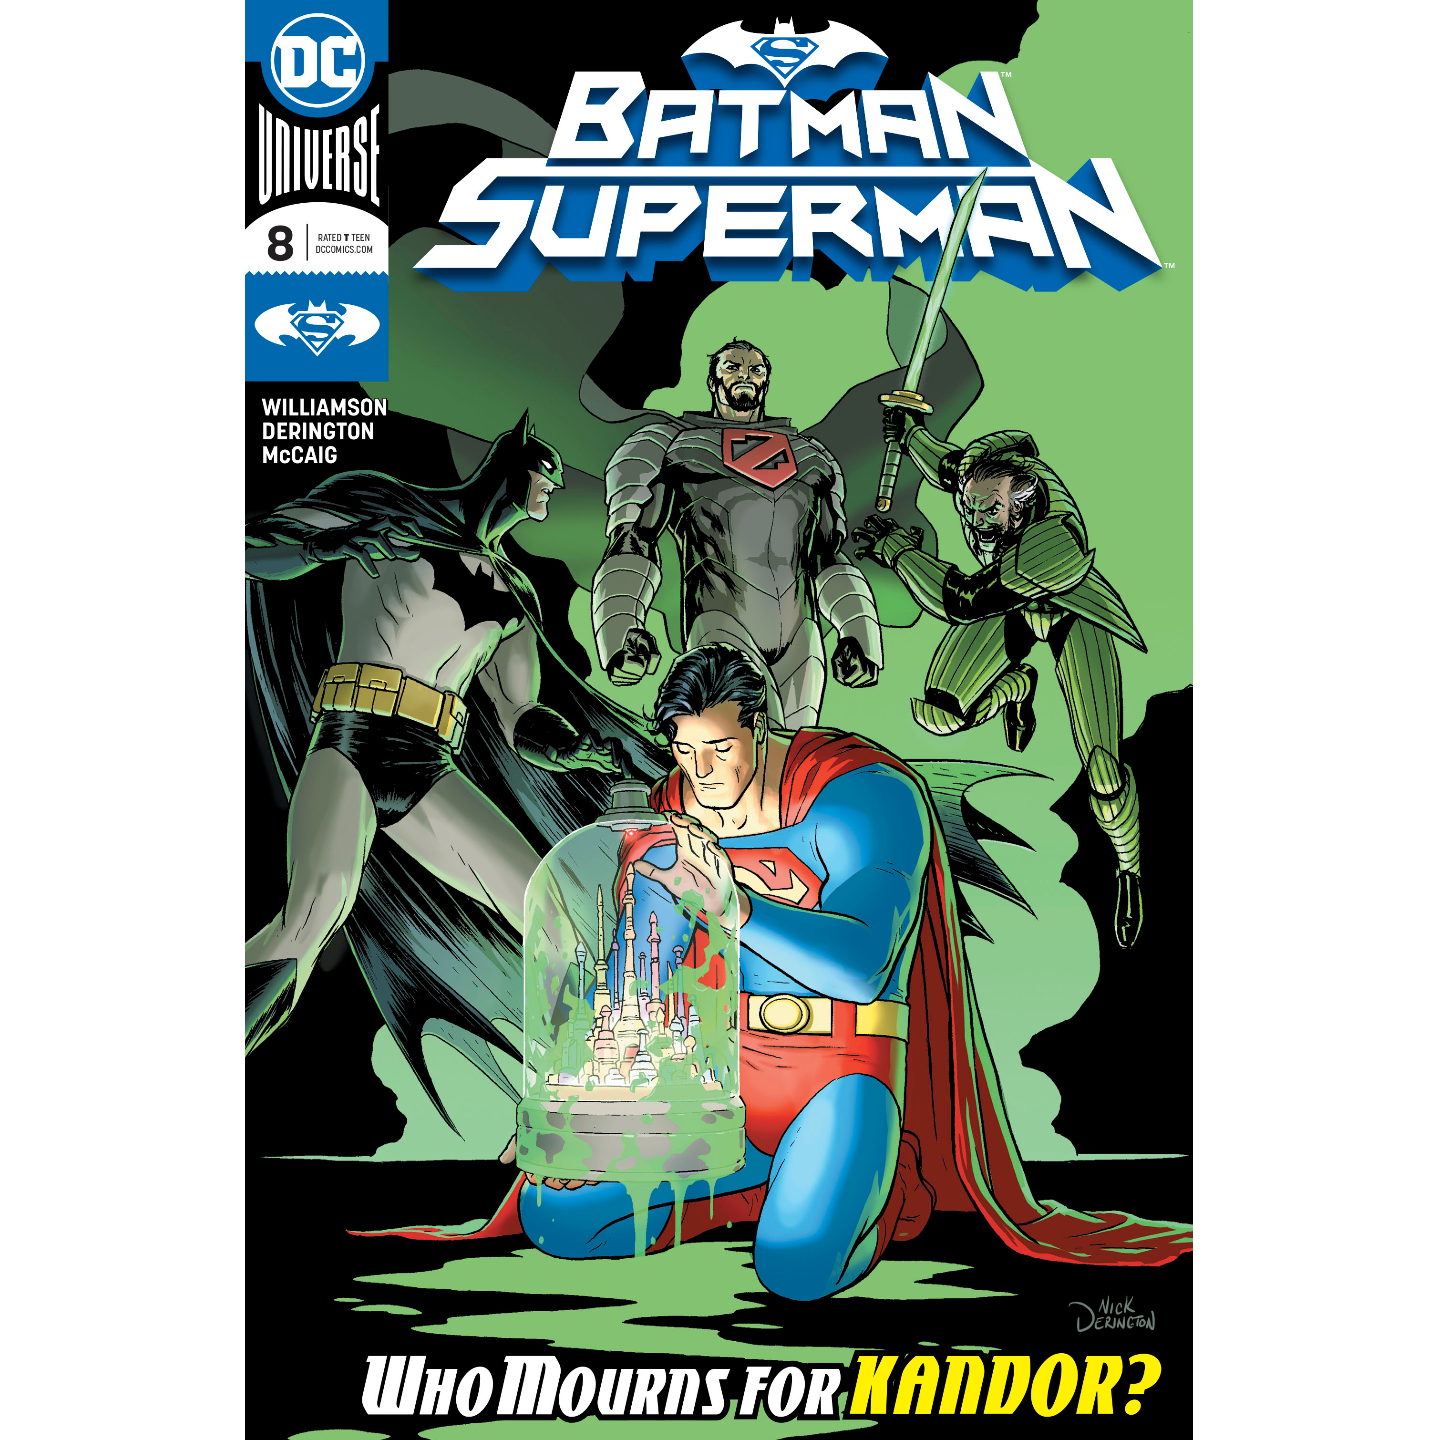 BATMAN SUPERMAN 8